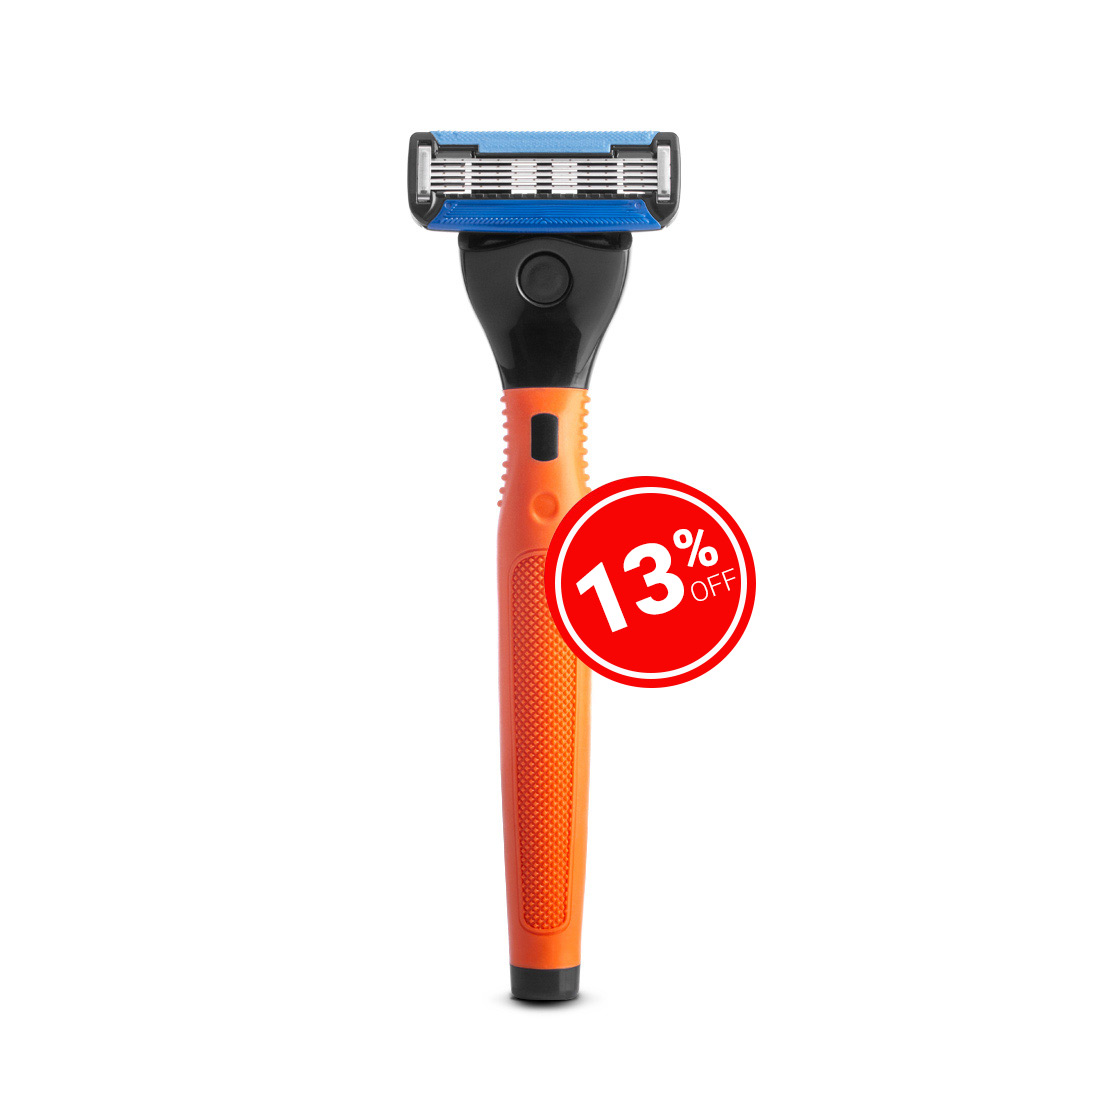 Ustraa 5 Blade Razor - Orange